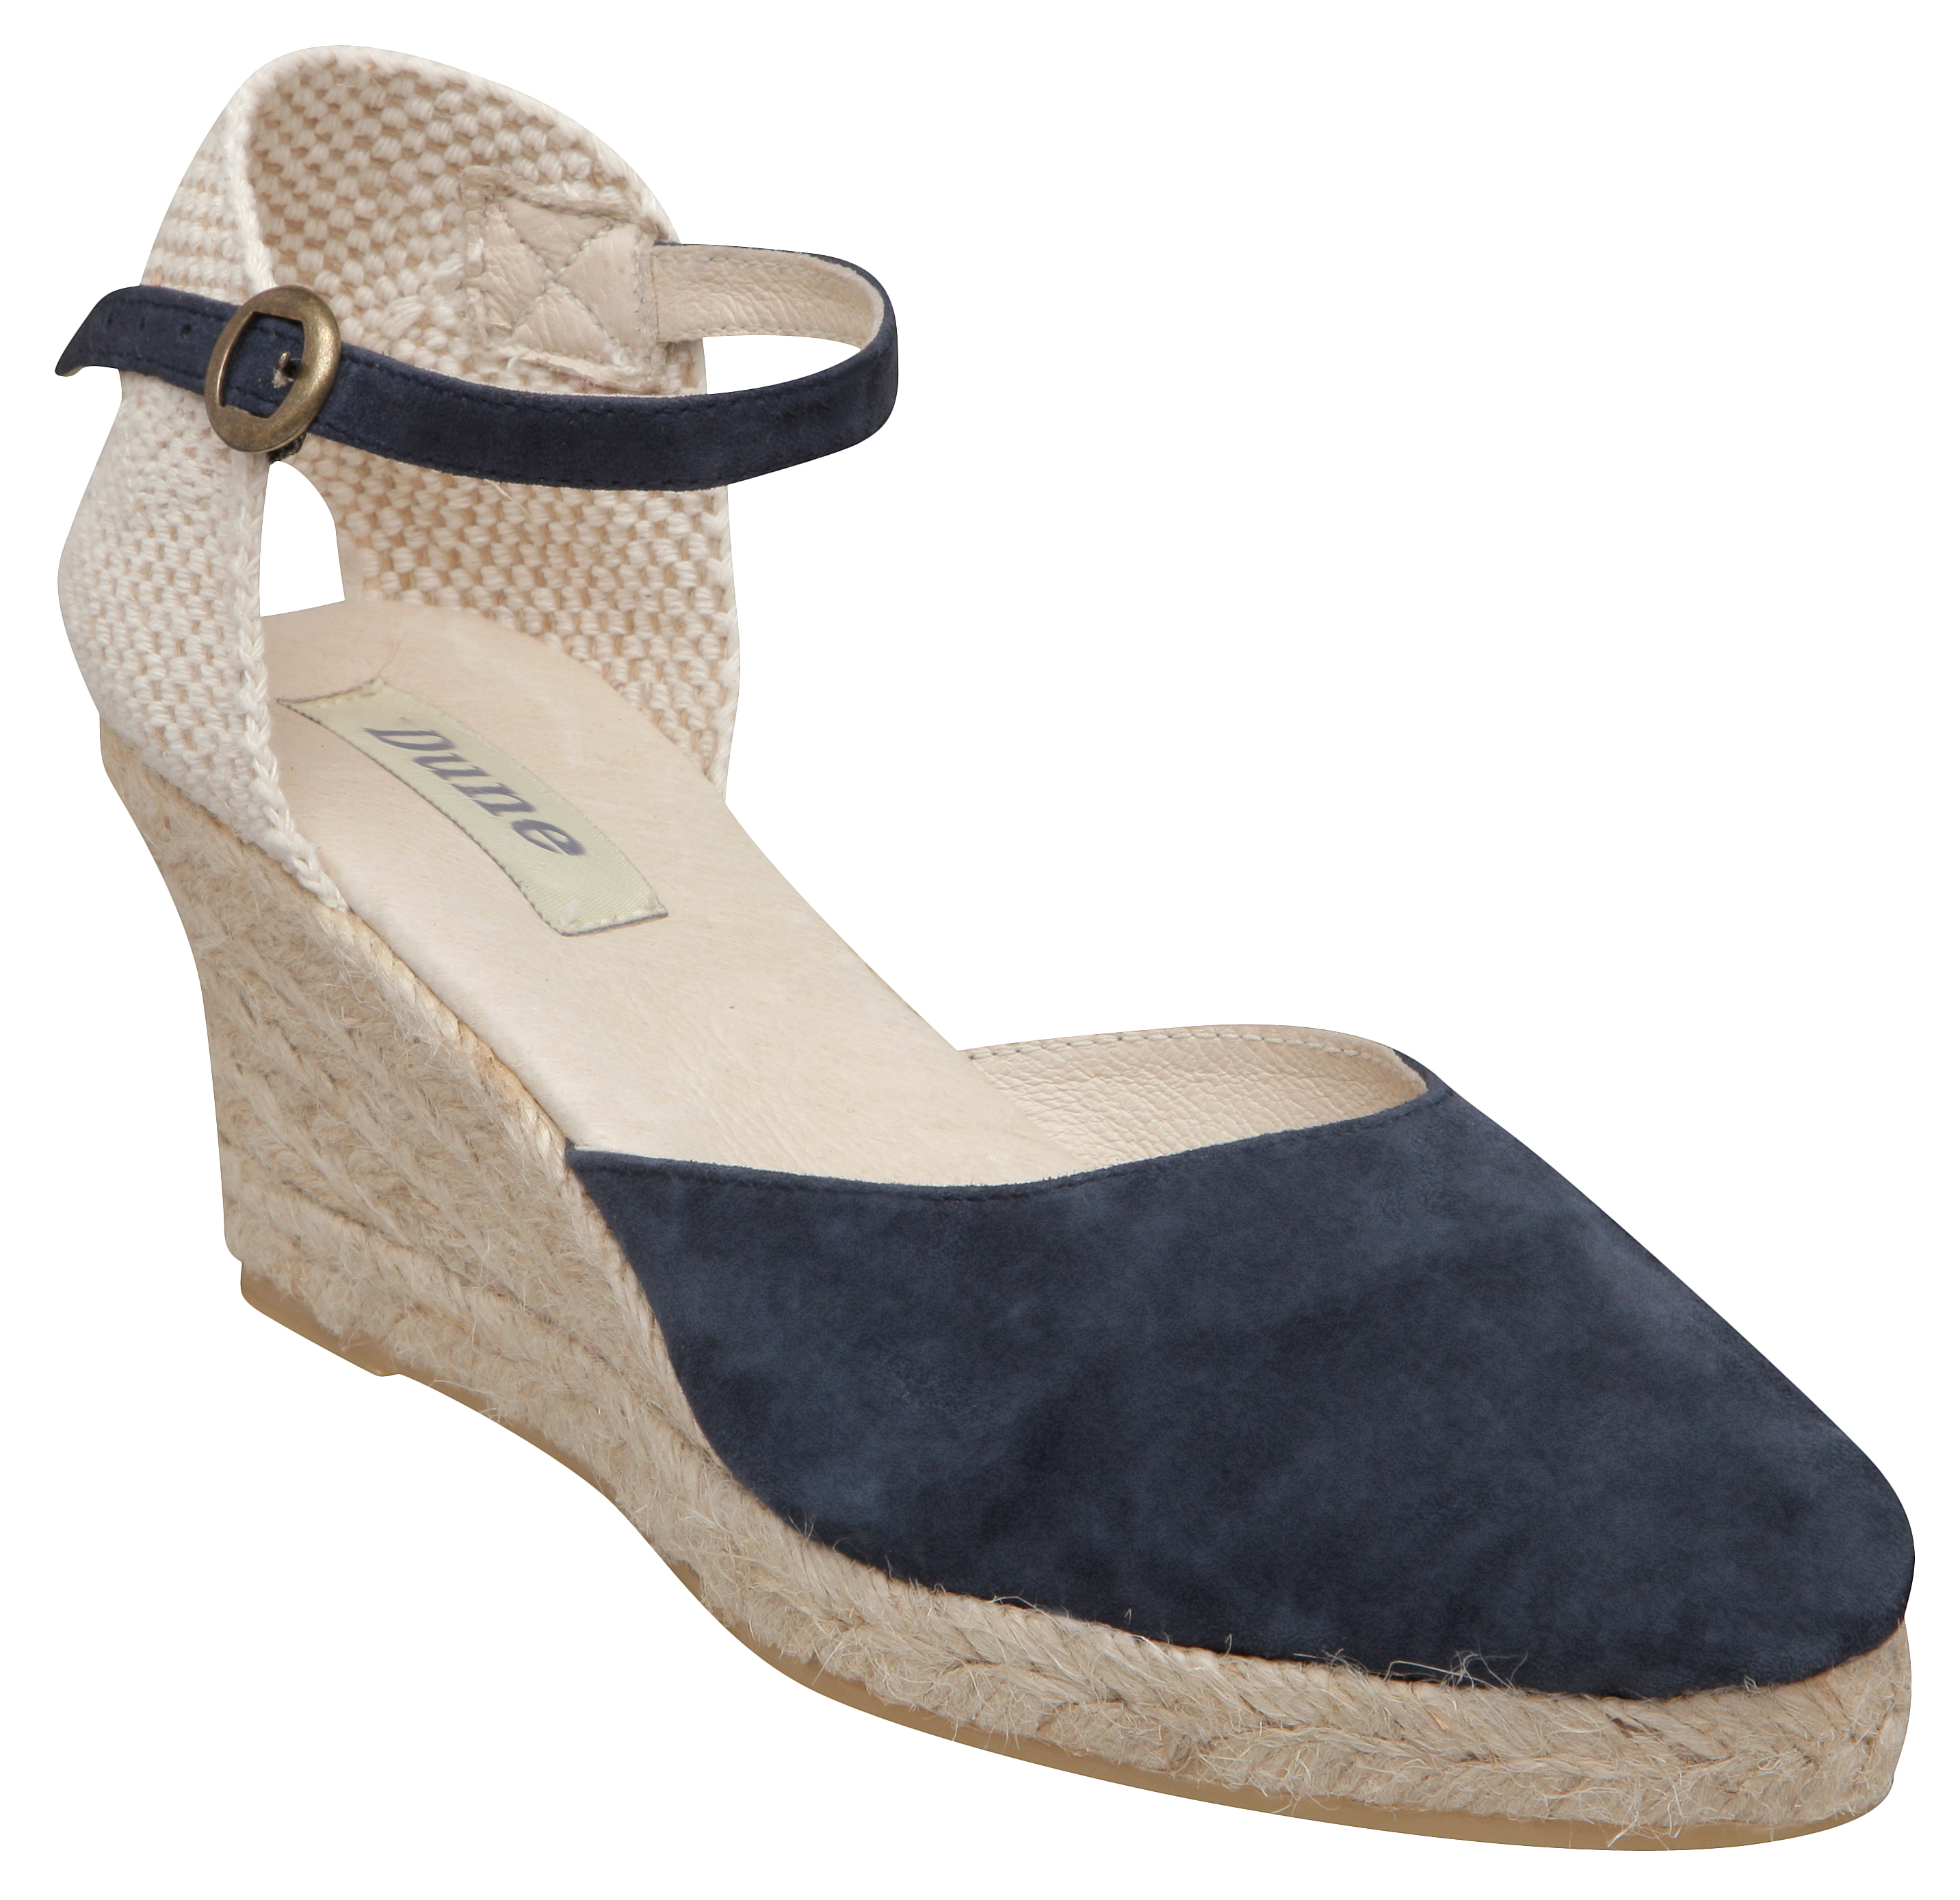 Dune Wedges Shoes Uk